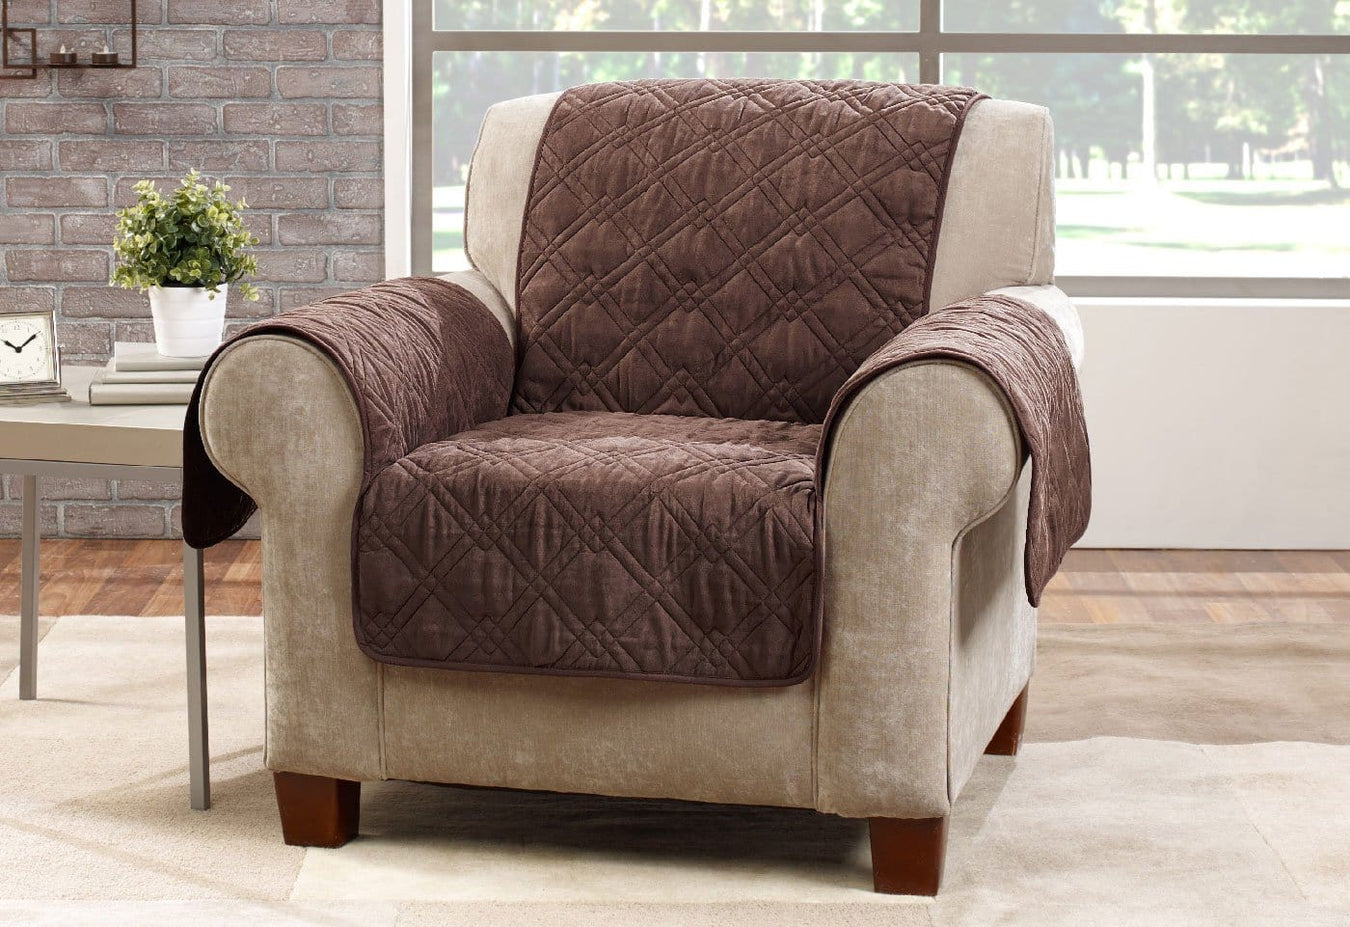 ... Microfiber Pet Chair Quilted Furniture Cover ... & Microfiber Pet Chair Quilted Furniture Cover   SureFit